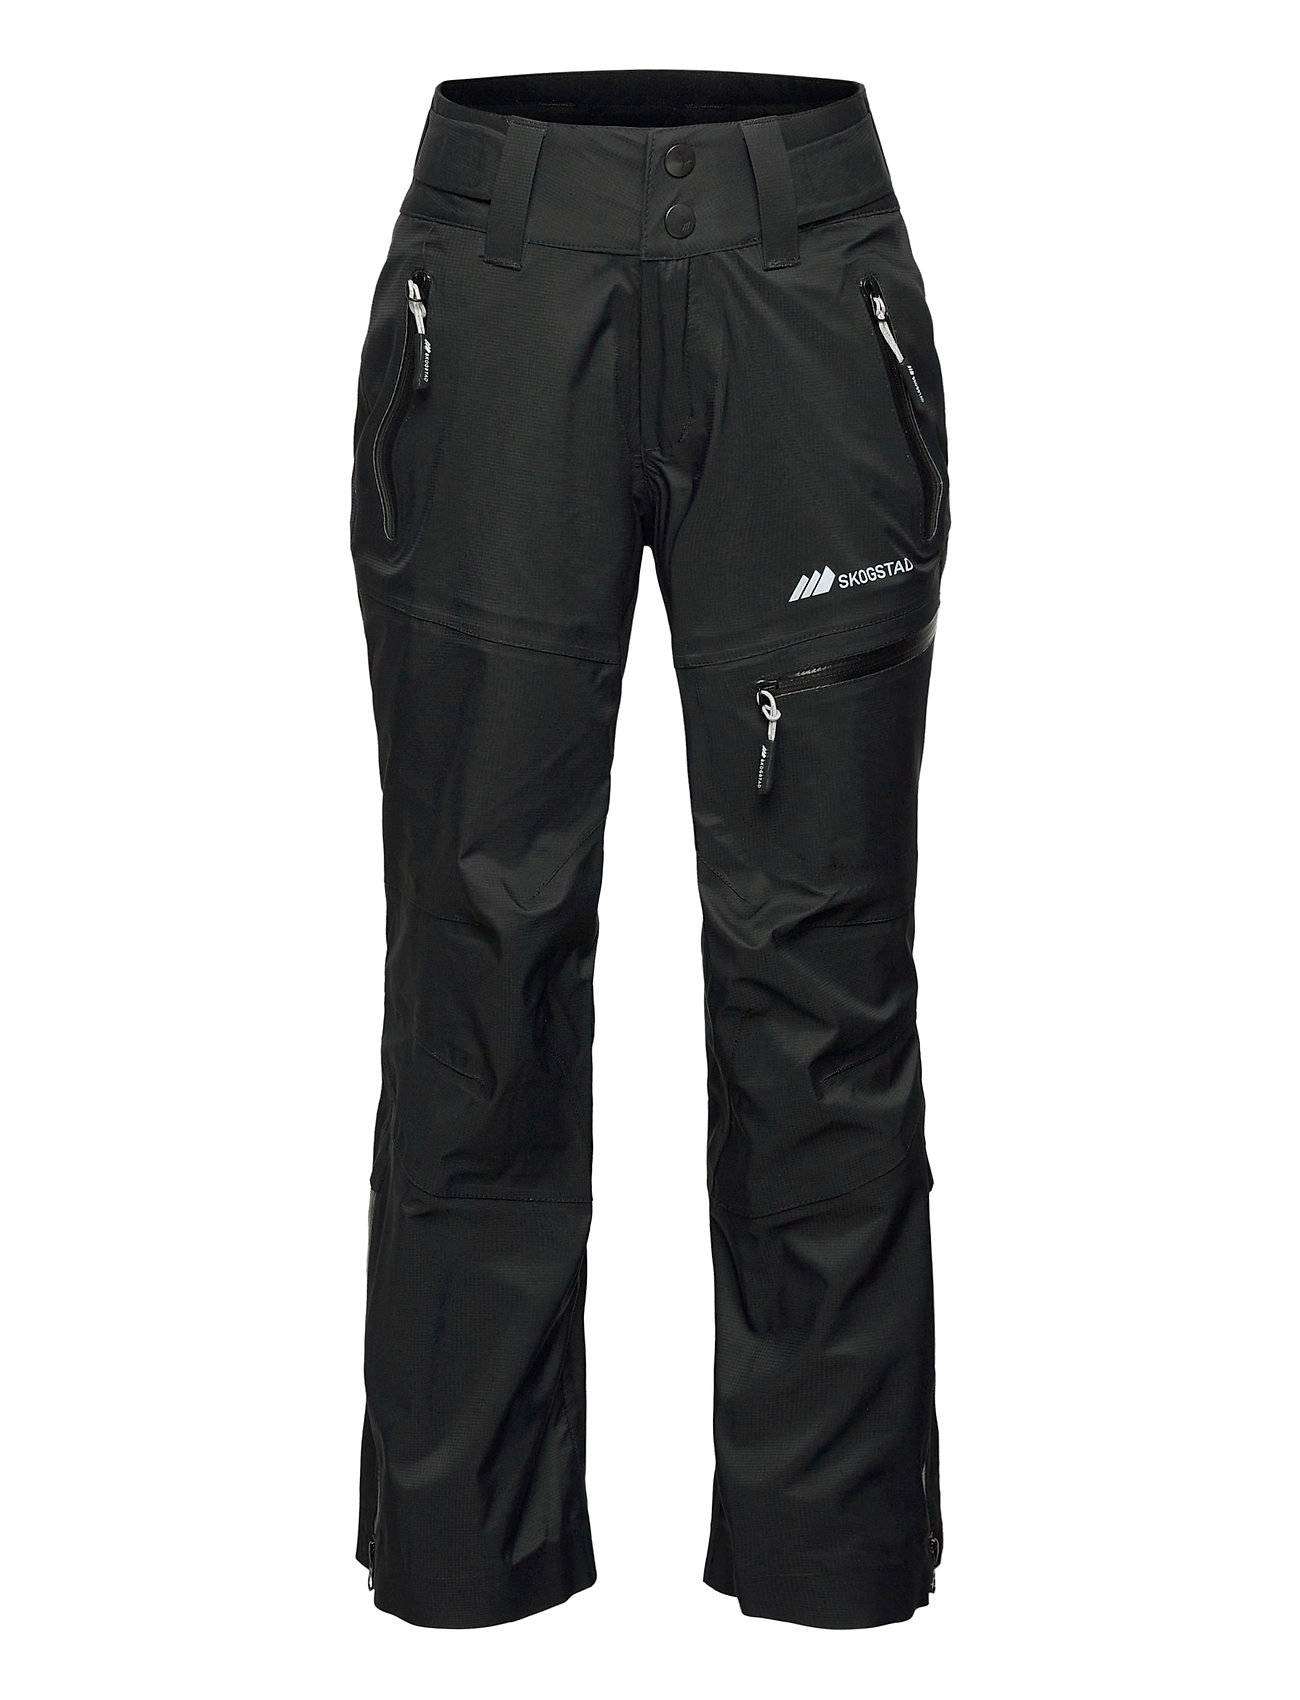 Skogstad Narvik 3-Layer Technical Shell Trouser Outerwear Shell Clothing Softshell Trousers Musta Skogstad